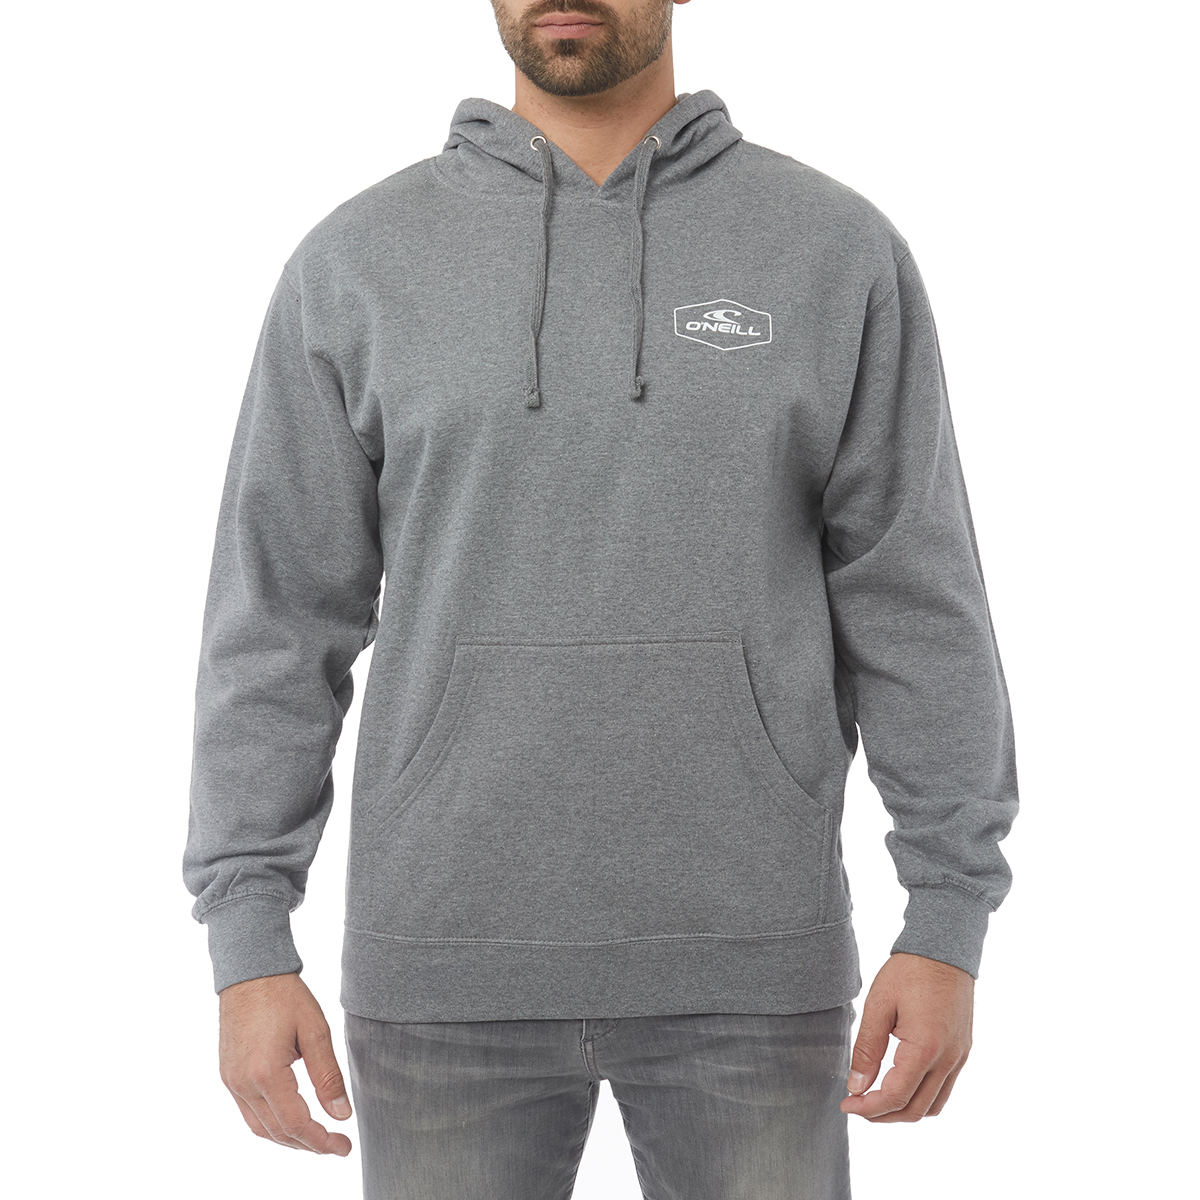 O'neill Guys' Trucker Fleece Pullover Hoodie - Black, S